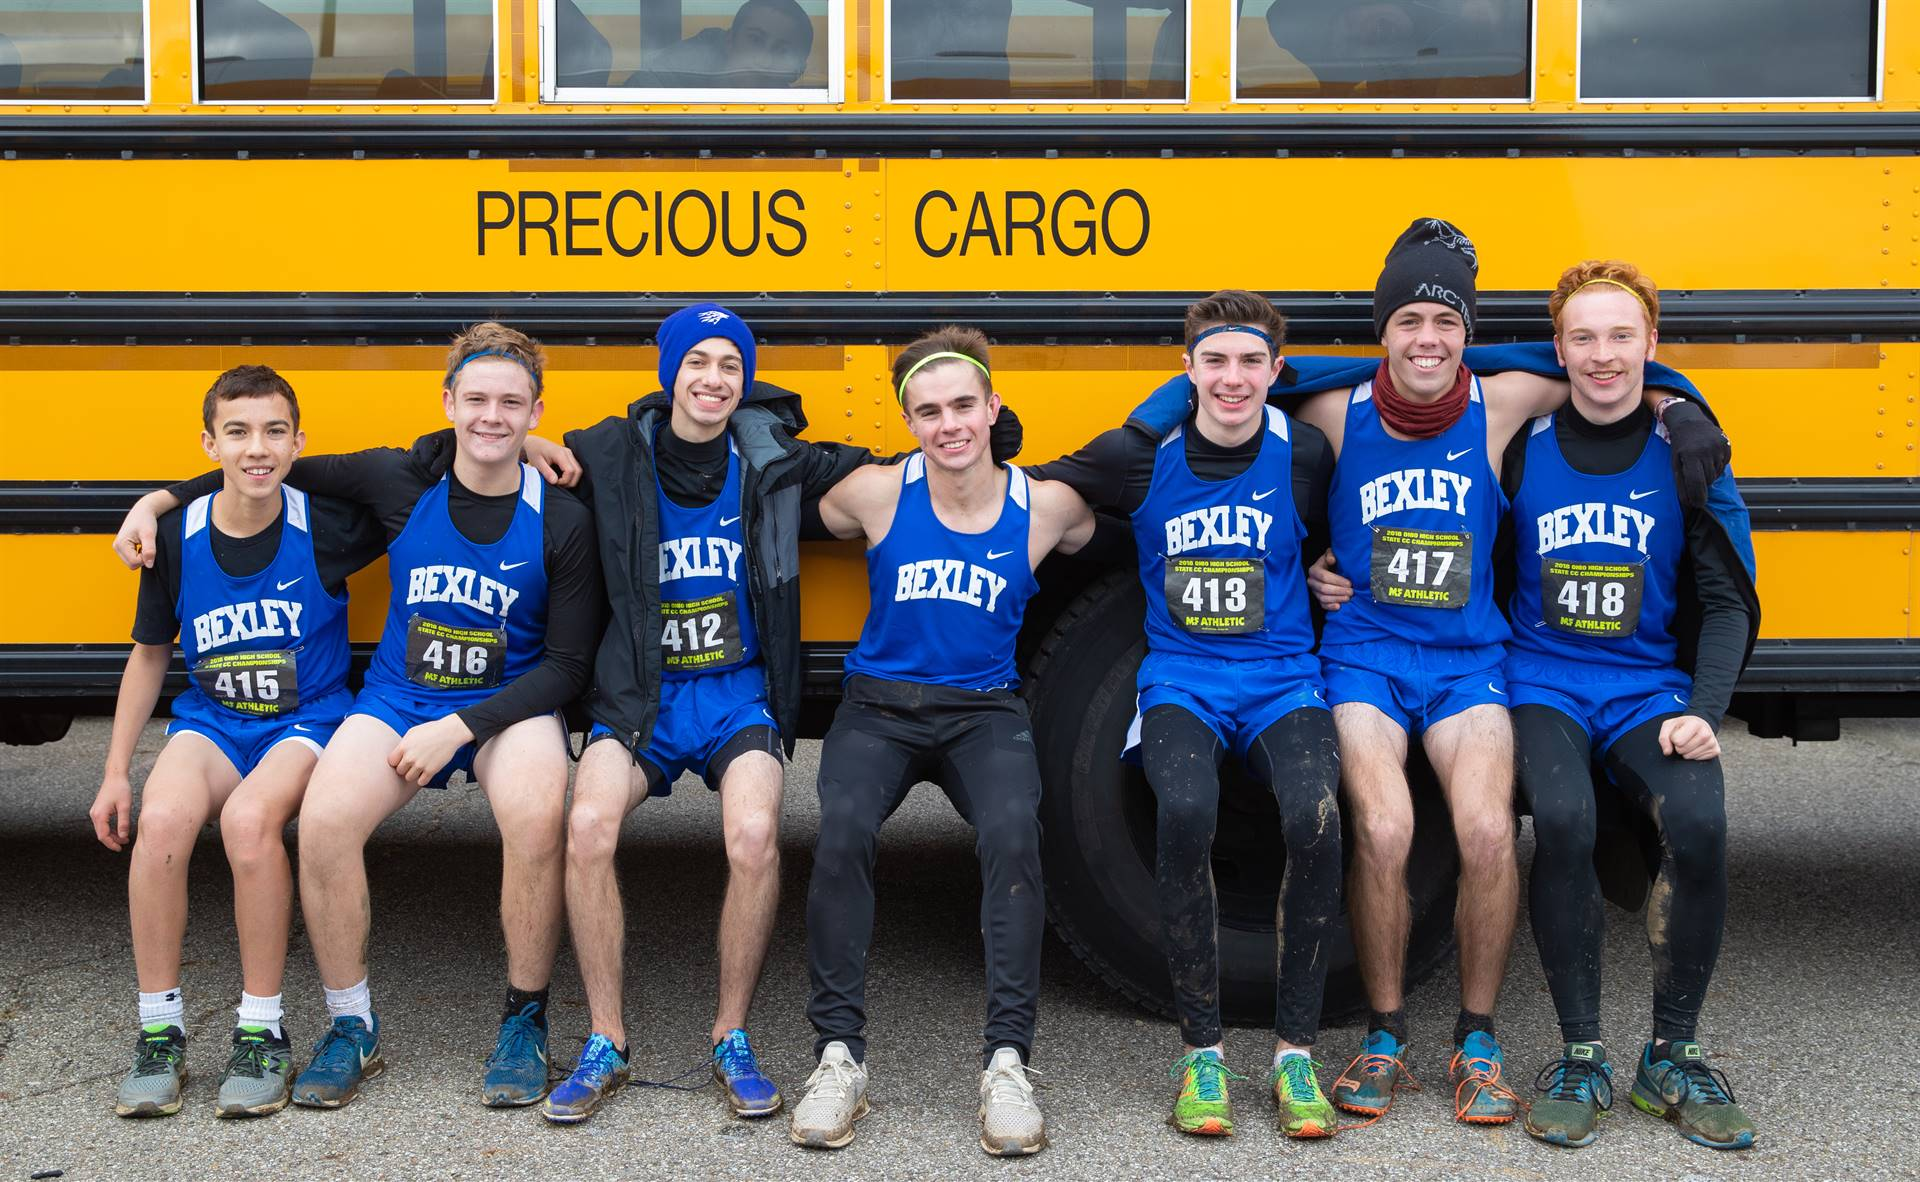 Pic of The Boys Cross Country Team who finished 18th at States!